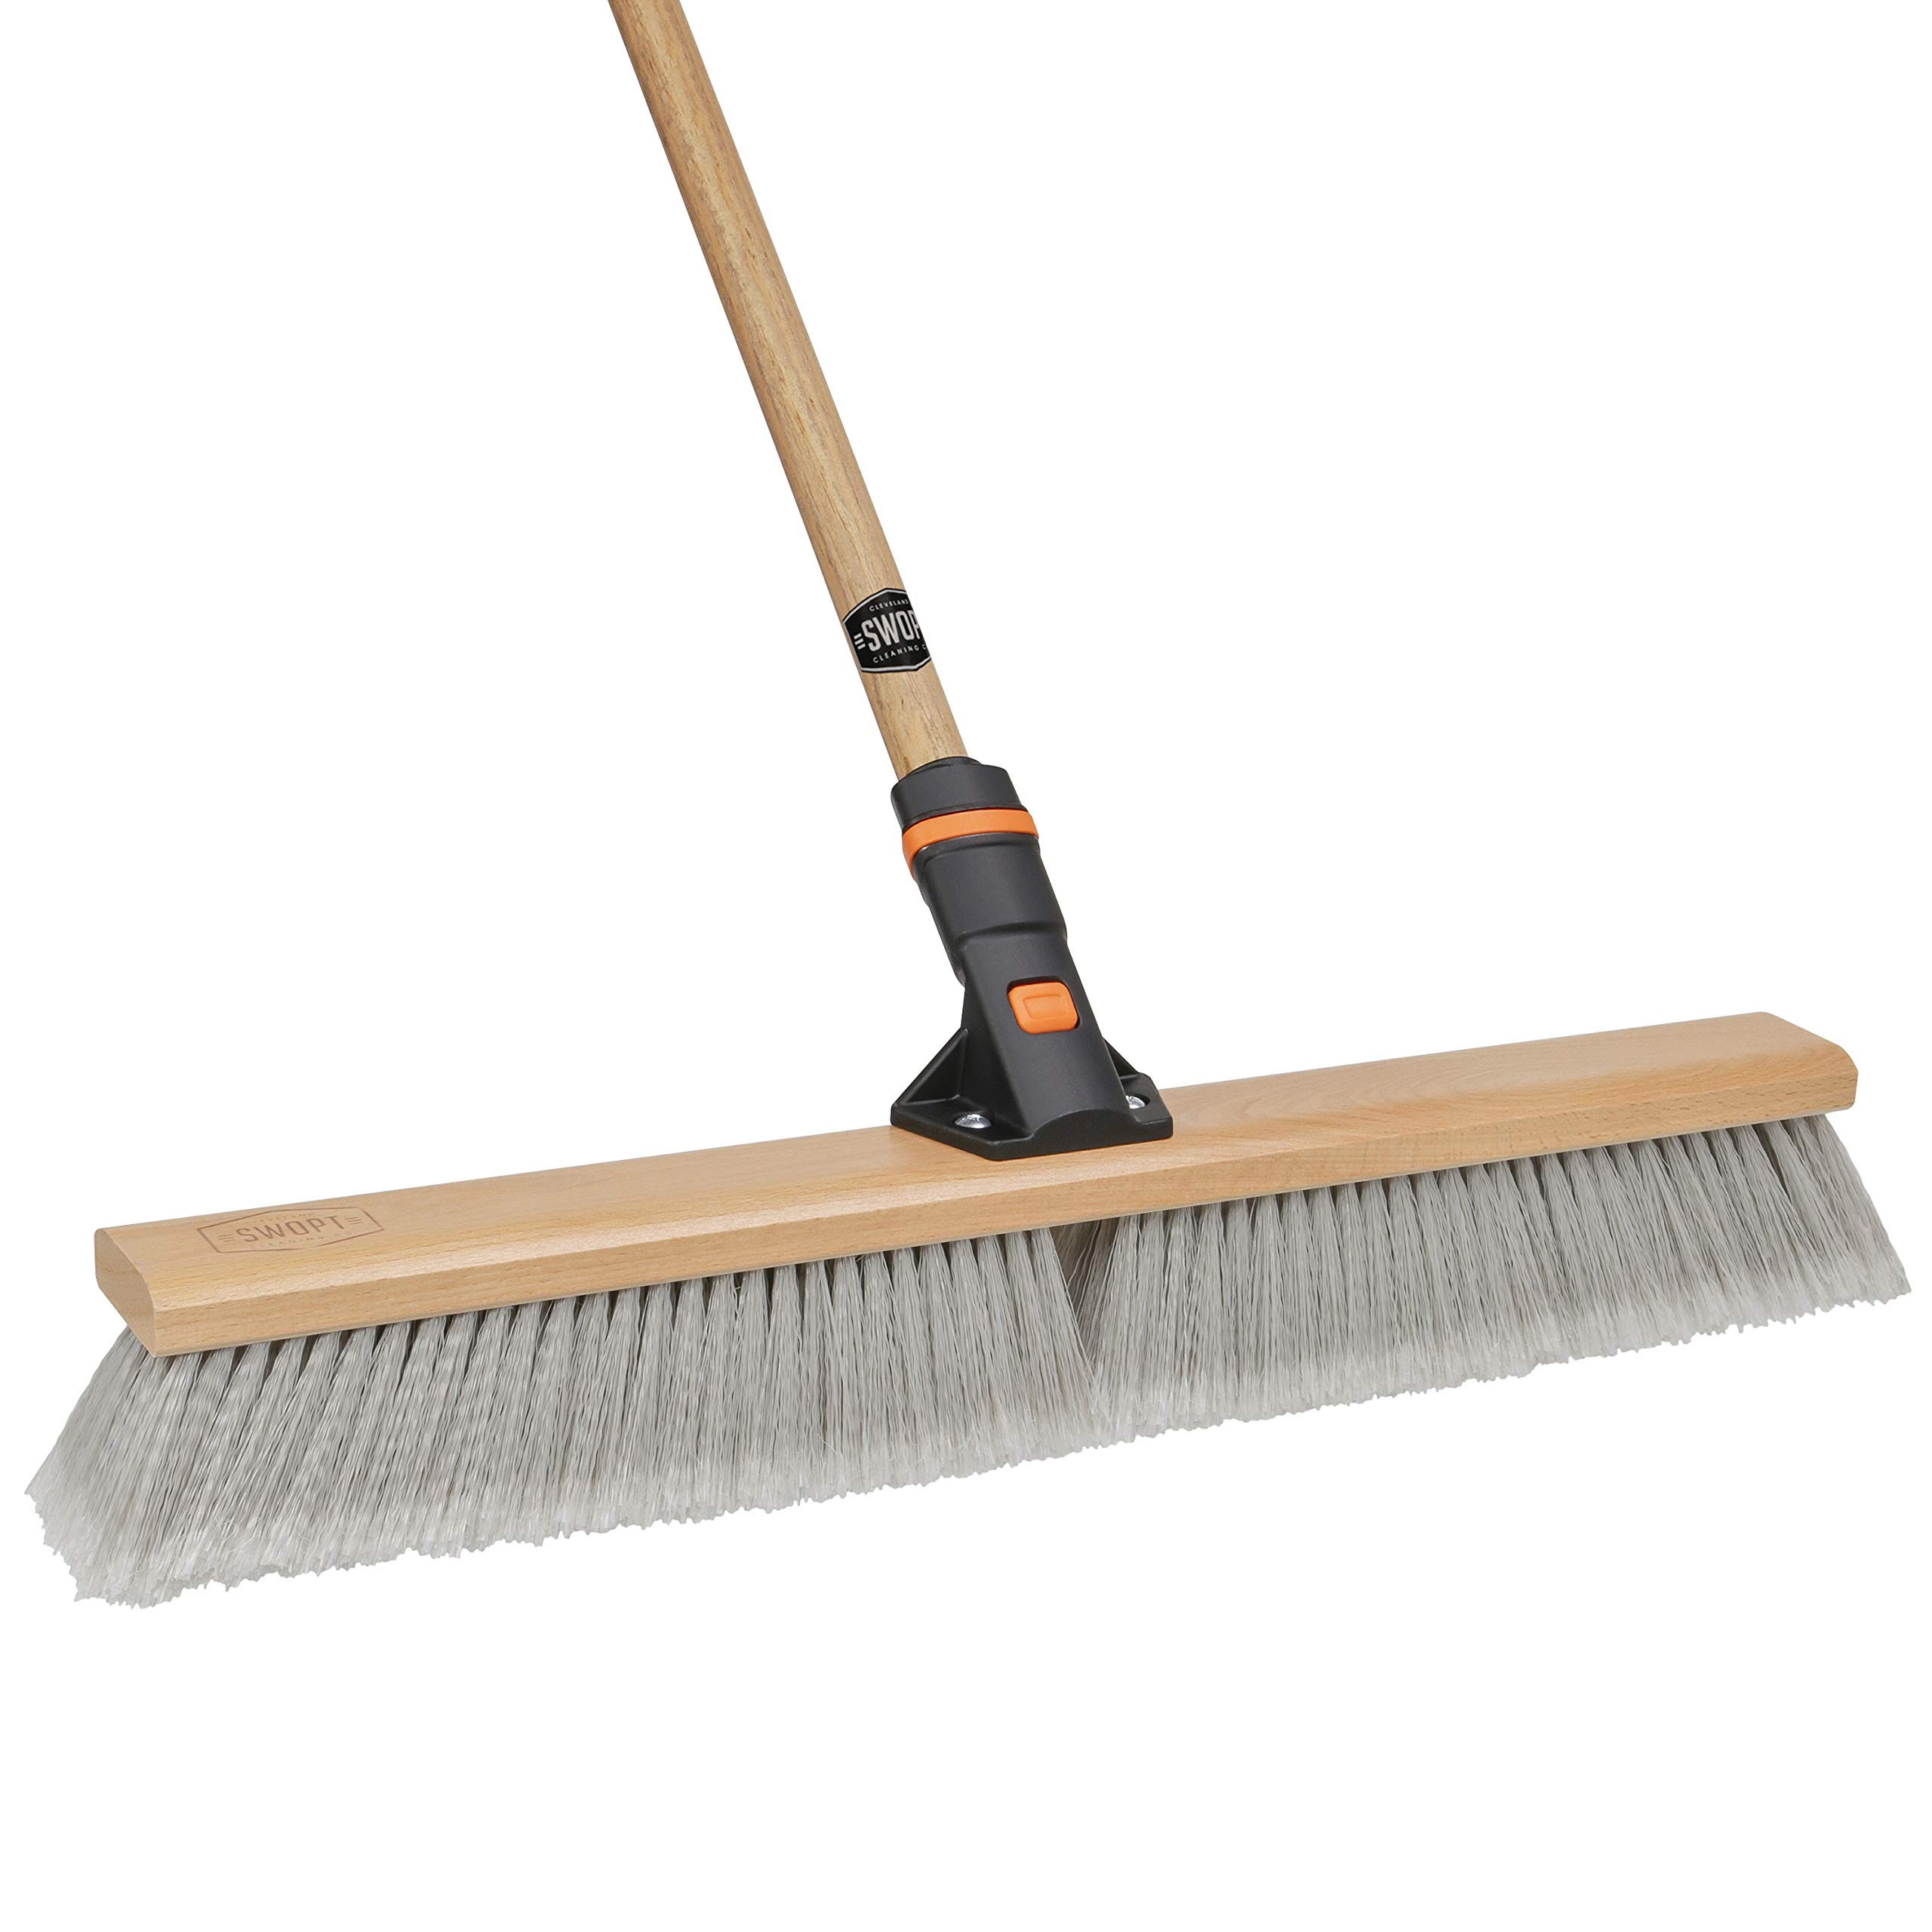 24'' SWOPT Premium Push Broom for Smooth Surfaces – 60'' Comfort Grip Wooden Handle – EVA Foam Comfort Grip – Handle Interchangeable with Other SWOPT Products – Stay Organized & Efficient